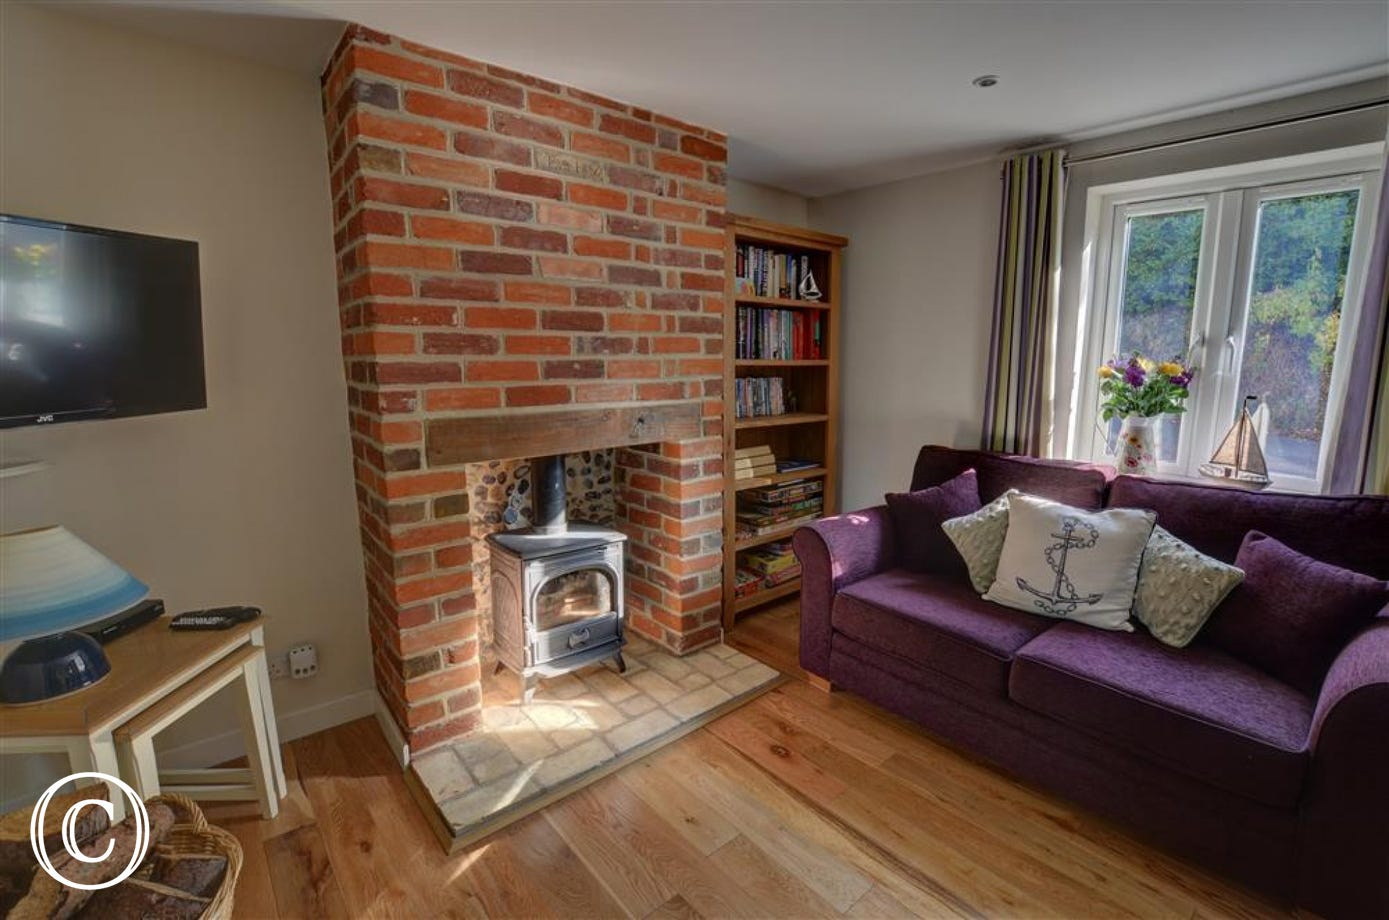 Enjoy the rustic charm of the wood burner in the red brick surround in the sitting room.